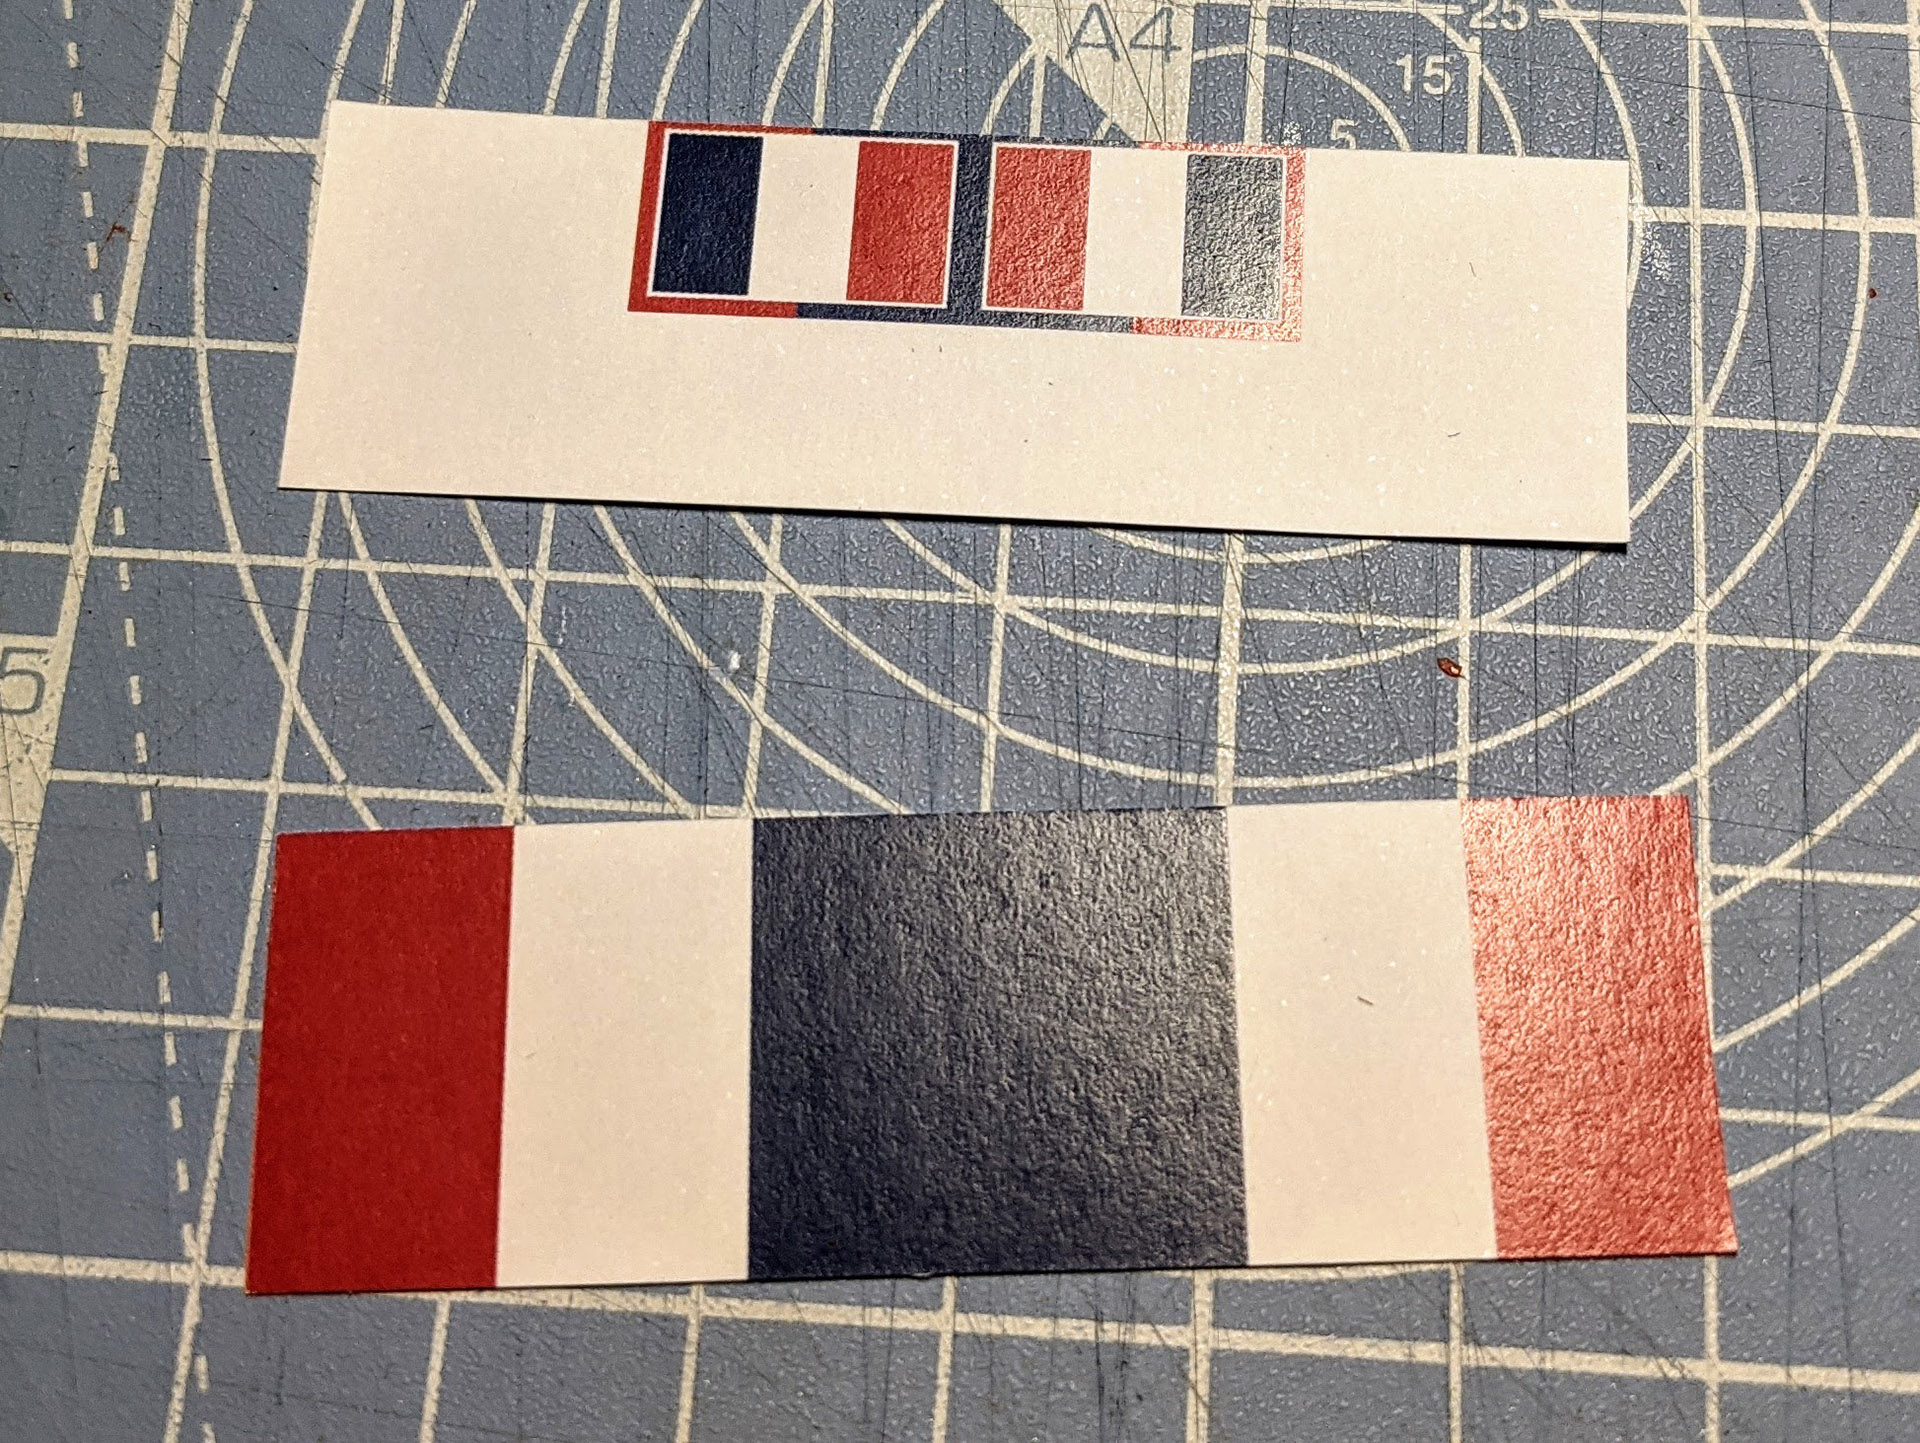 Use scissors to complete the cuts for each flag.